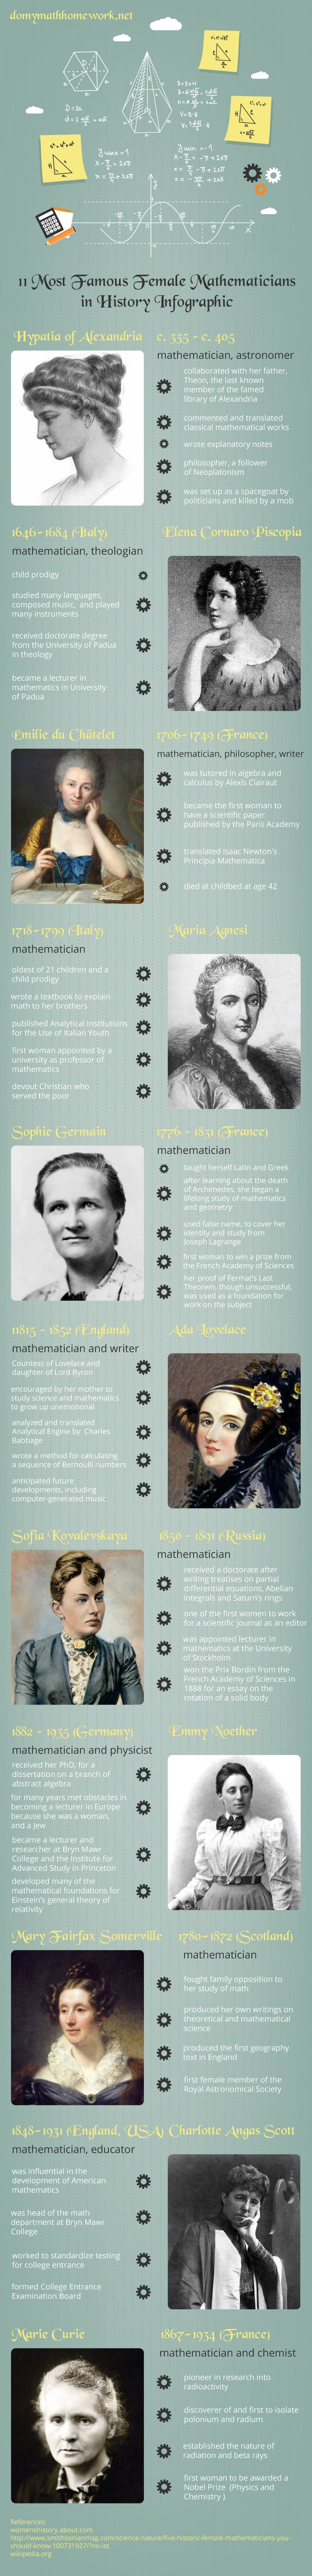 best mathematicians and scientists images 209 best mathematicians and scientists images mathematicians scientists and famous people